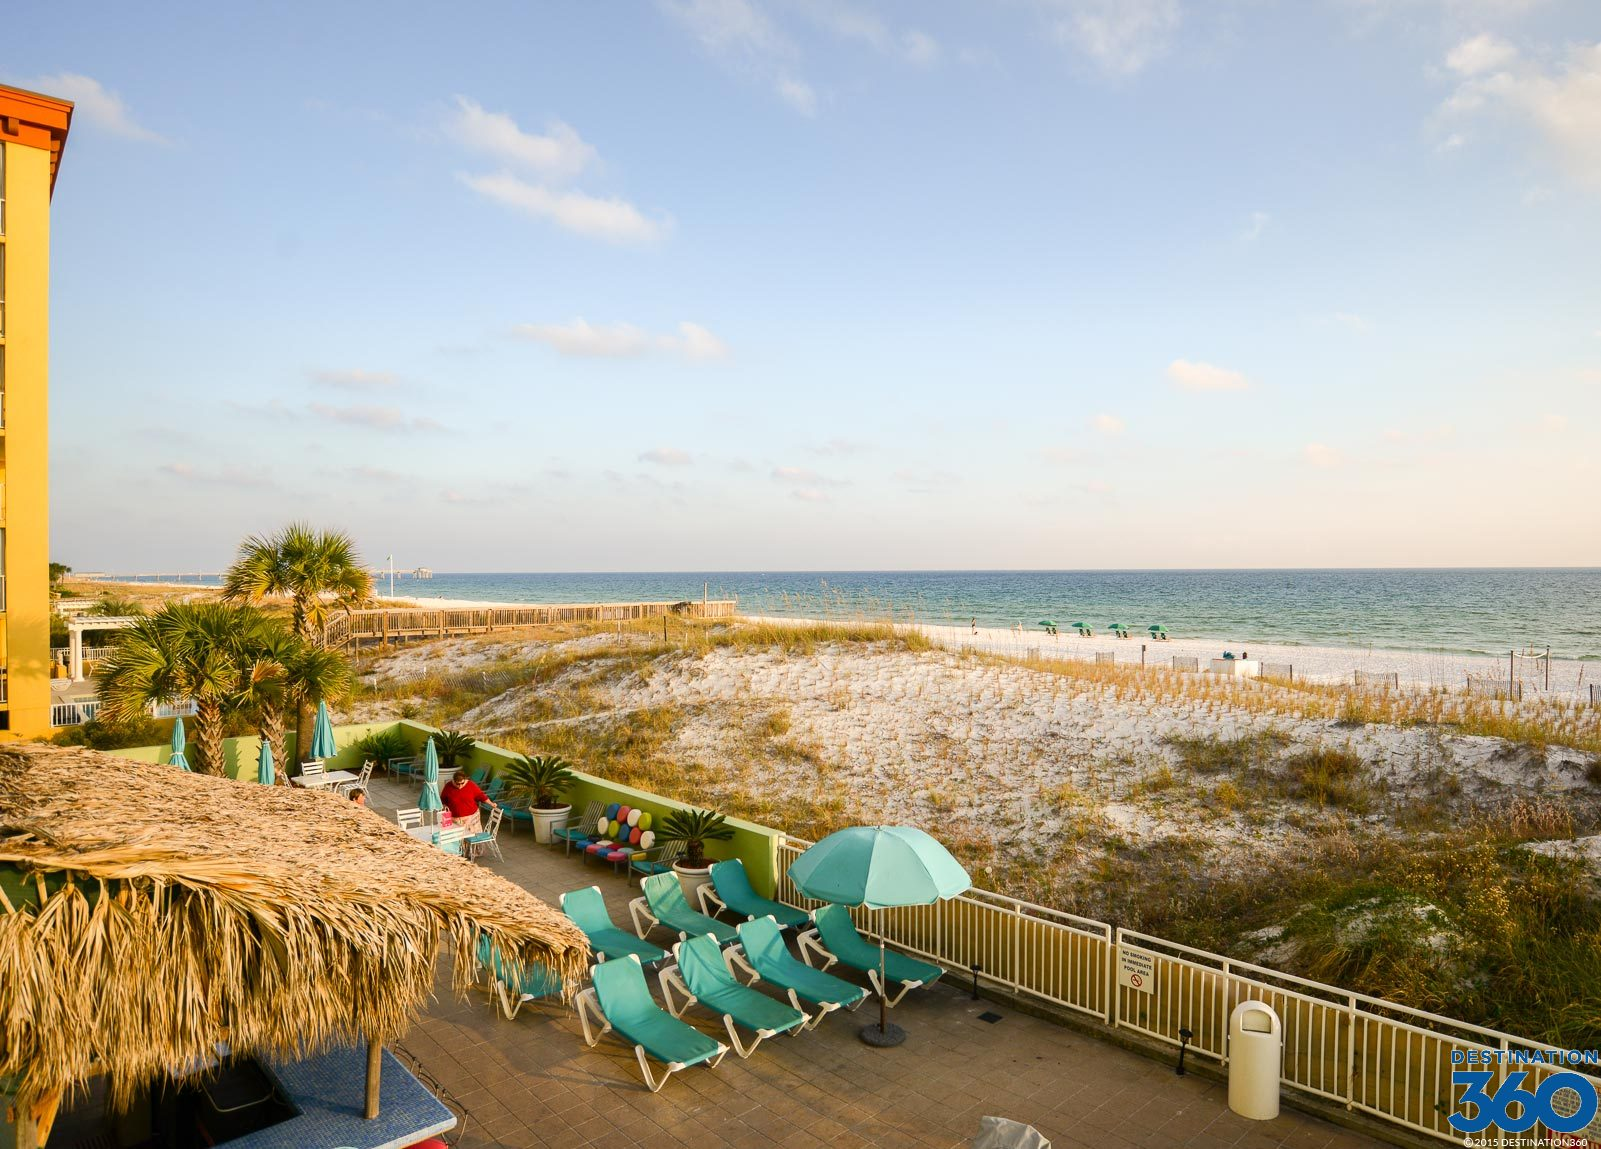 Beachfront Hotels In Destin Destin Florida Beach Hotels